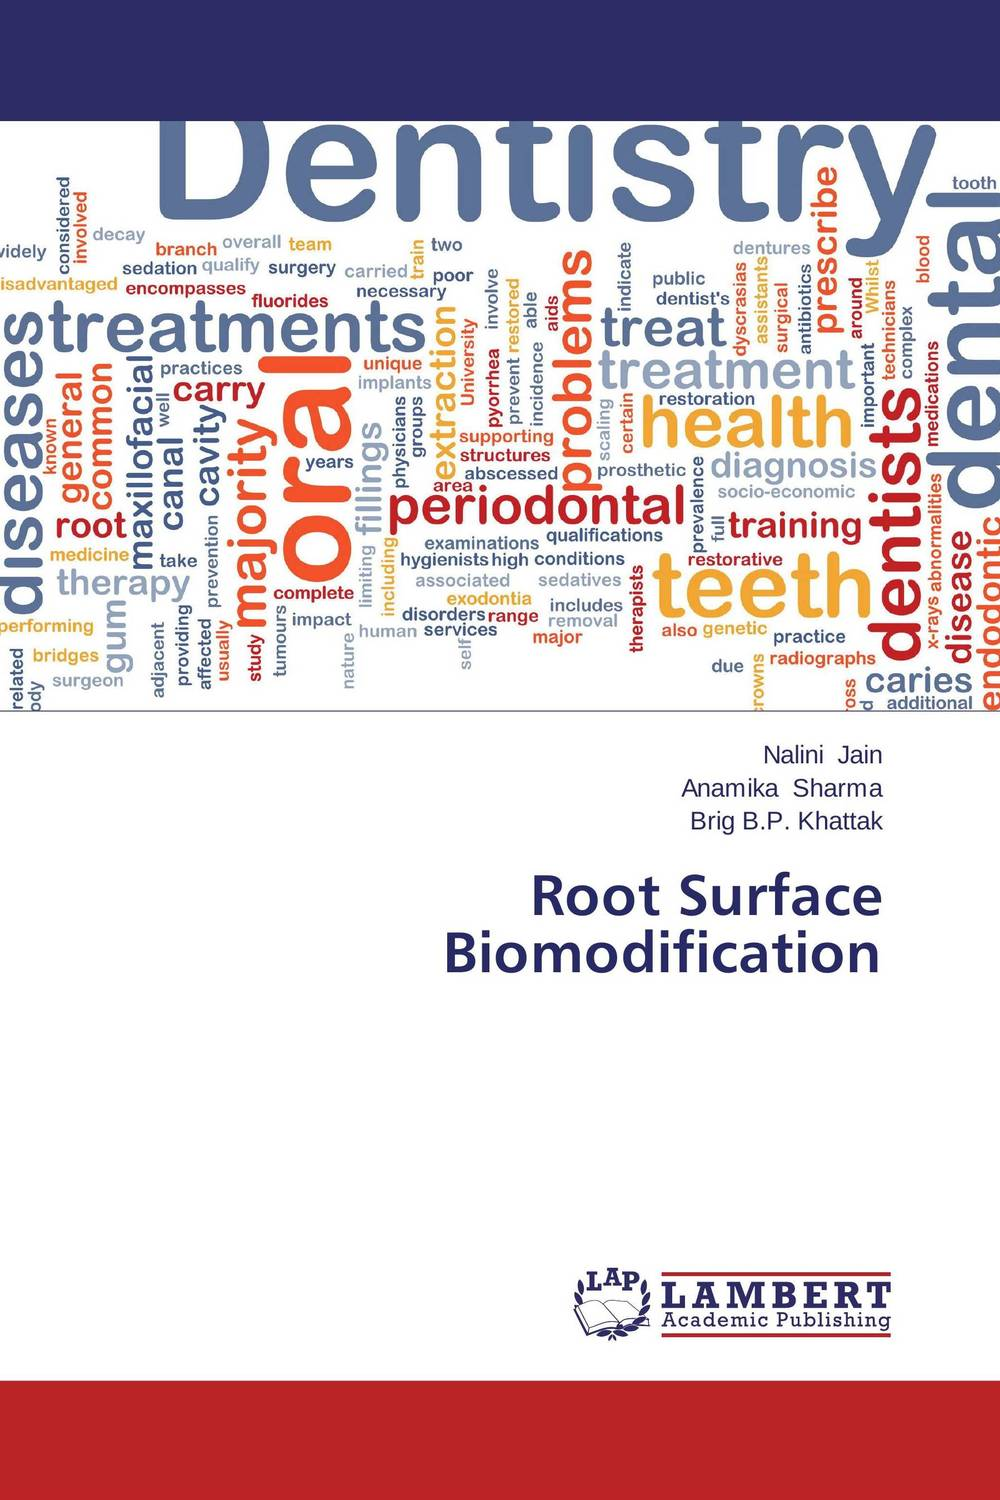 Root Surface Biomodification the teeth with root canal students to practice root canal preparation and filling actually